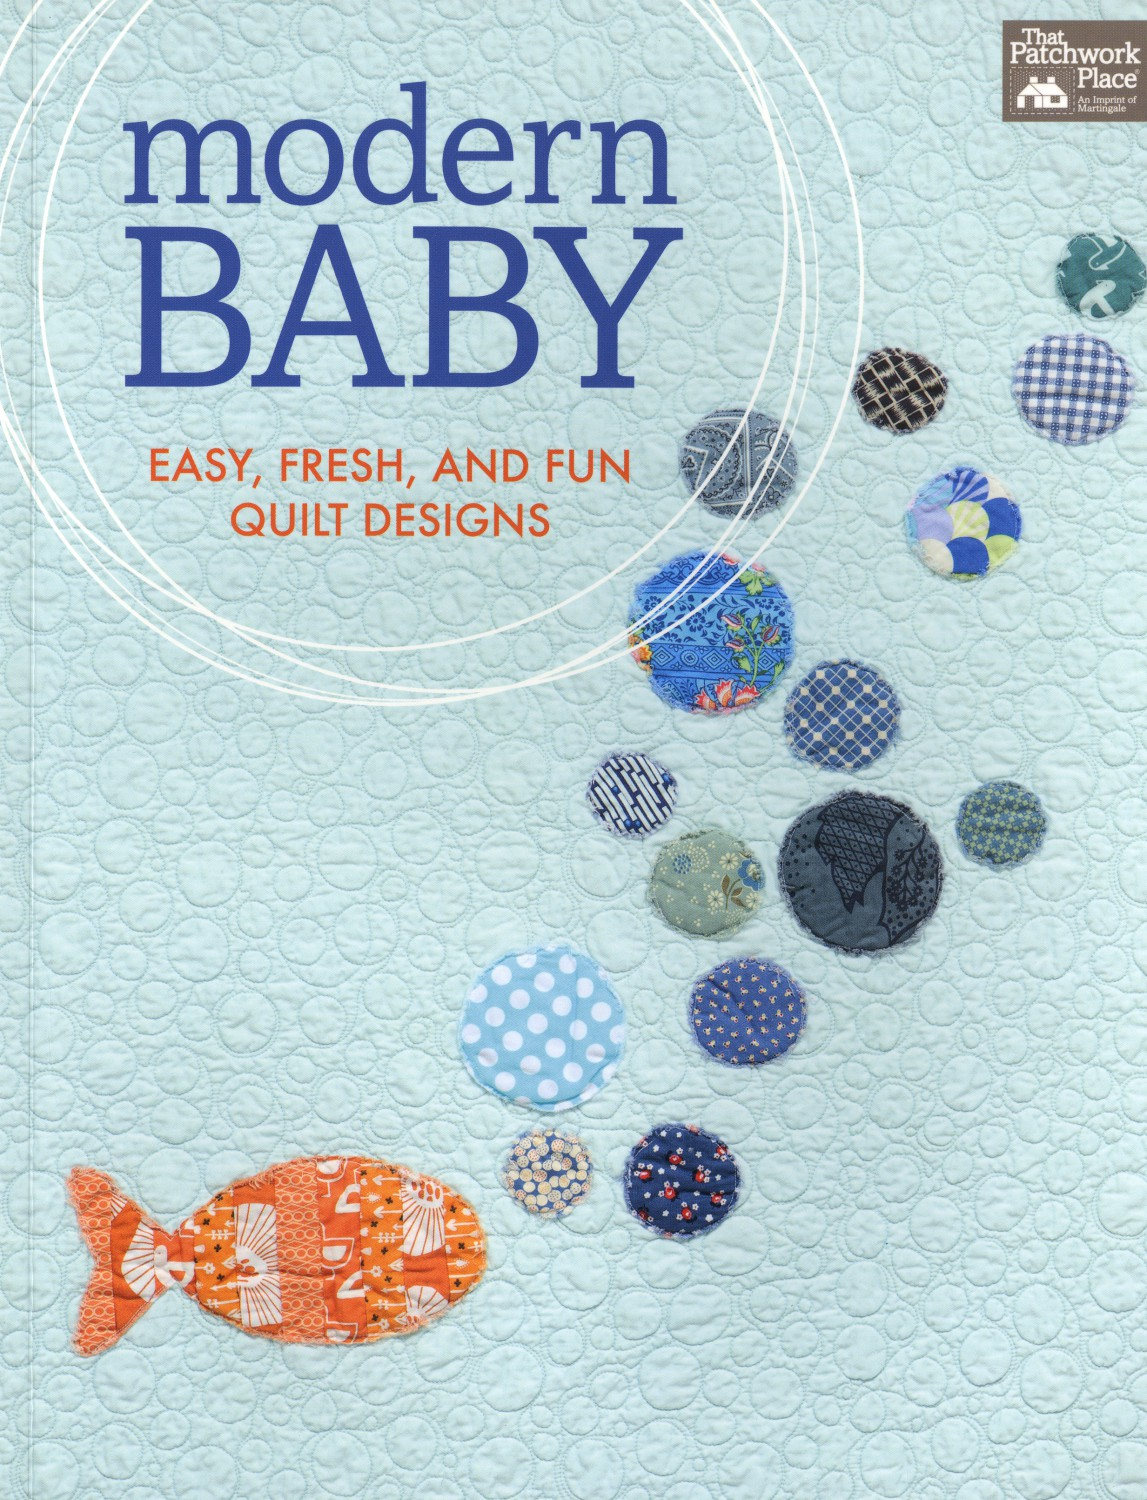 Modern Baby Easy, Fresh, and Fun Quilt Patterns Book